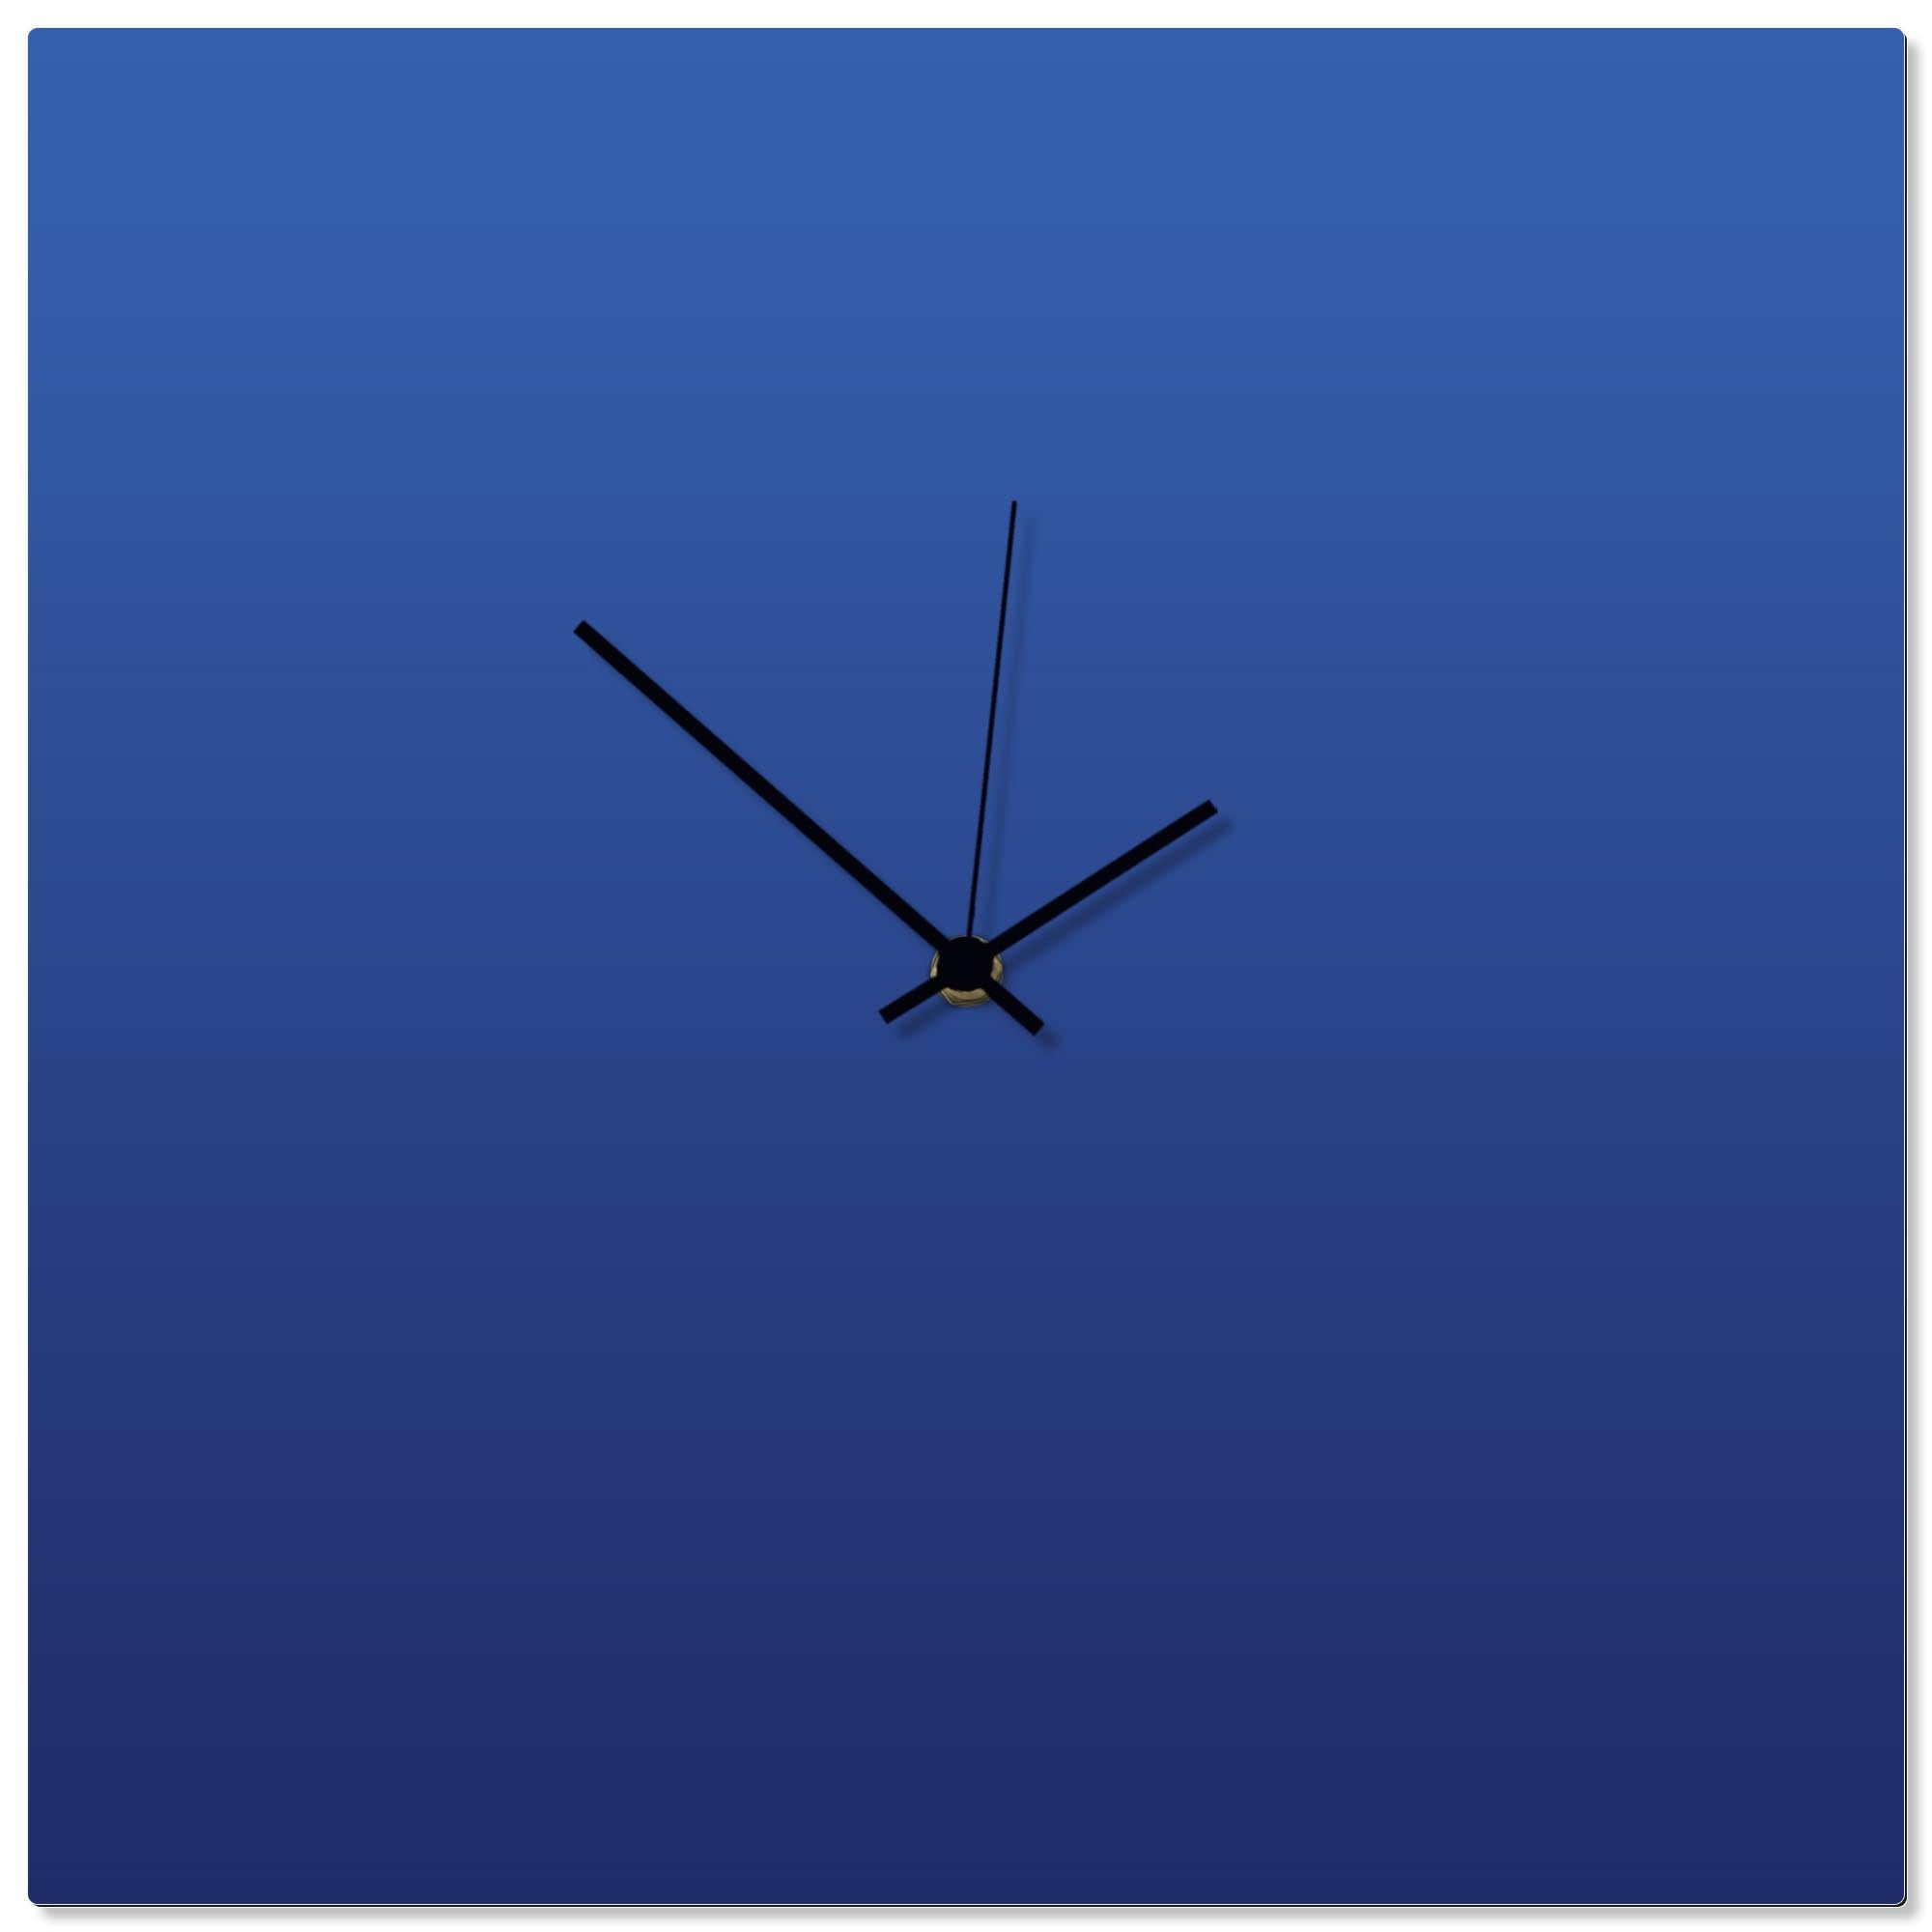 Blueout Black Square Clock by Adam Schwoeppe - Contemporary Clock on Aluminum Polymetal